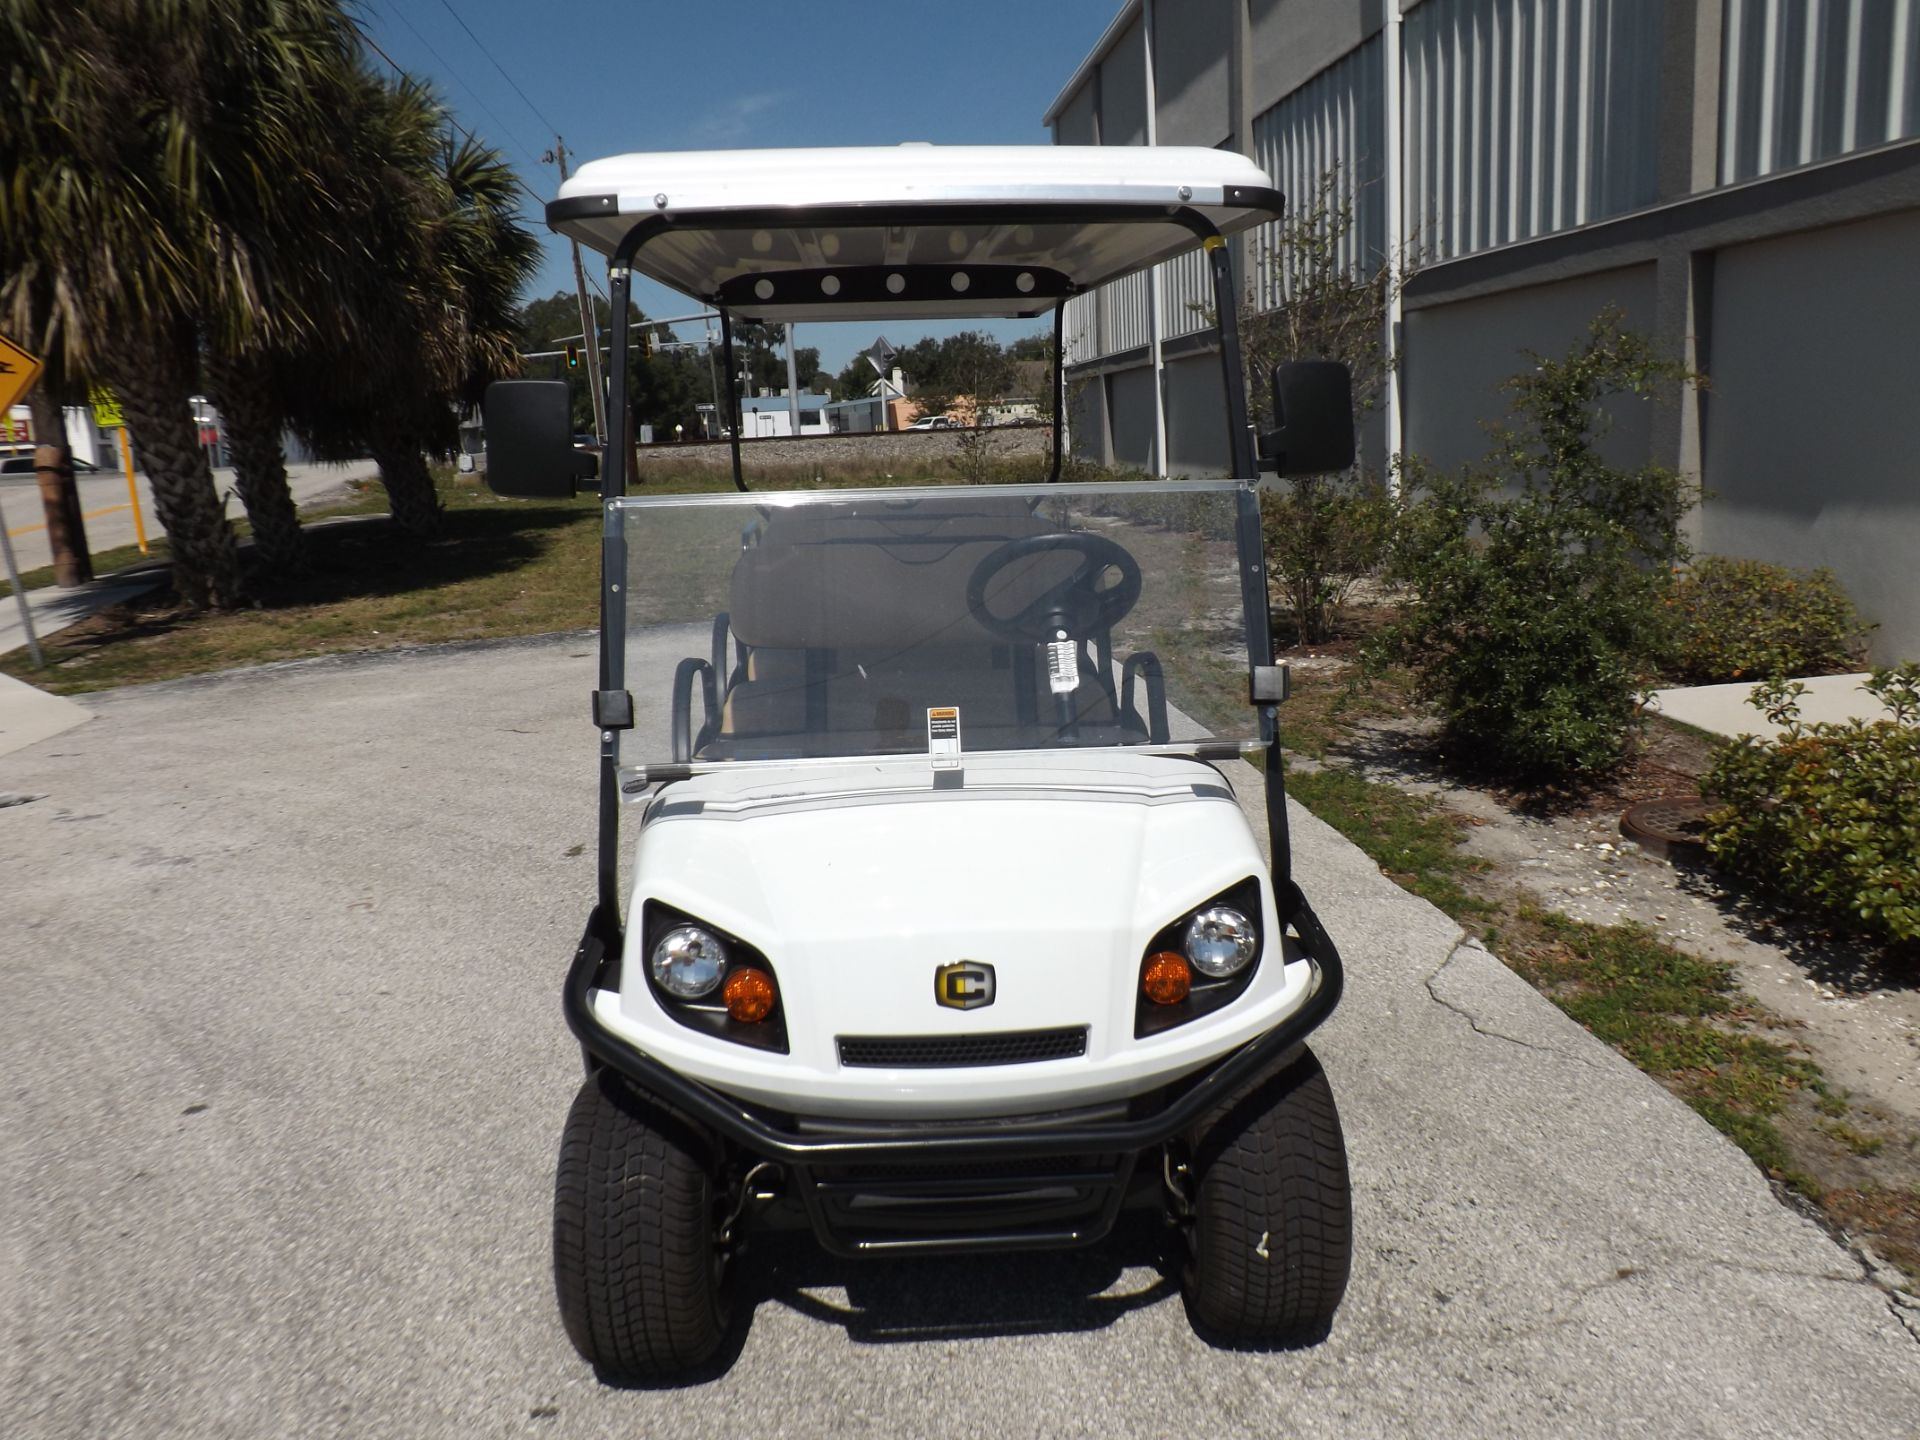 2019 Cushman Shuttle 8 EFI Gas in Lakeland, Florida - Photo 2